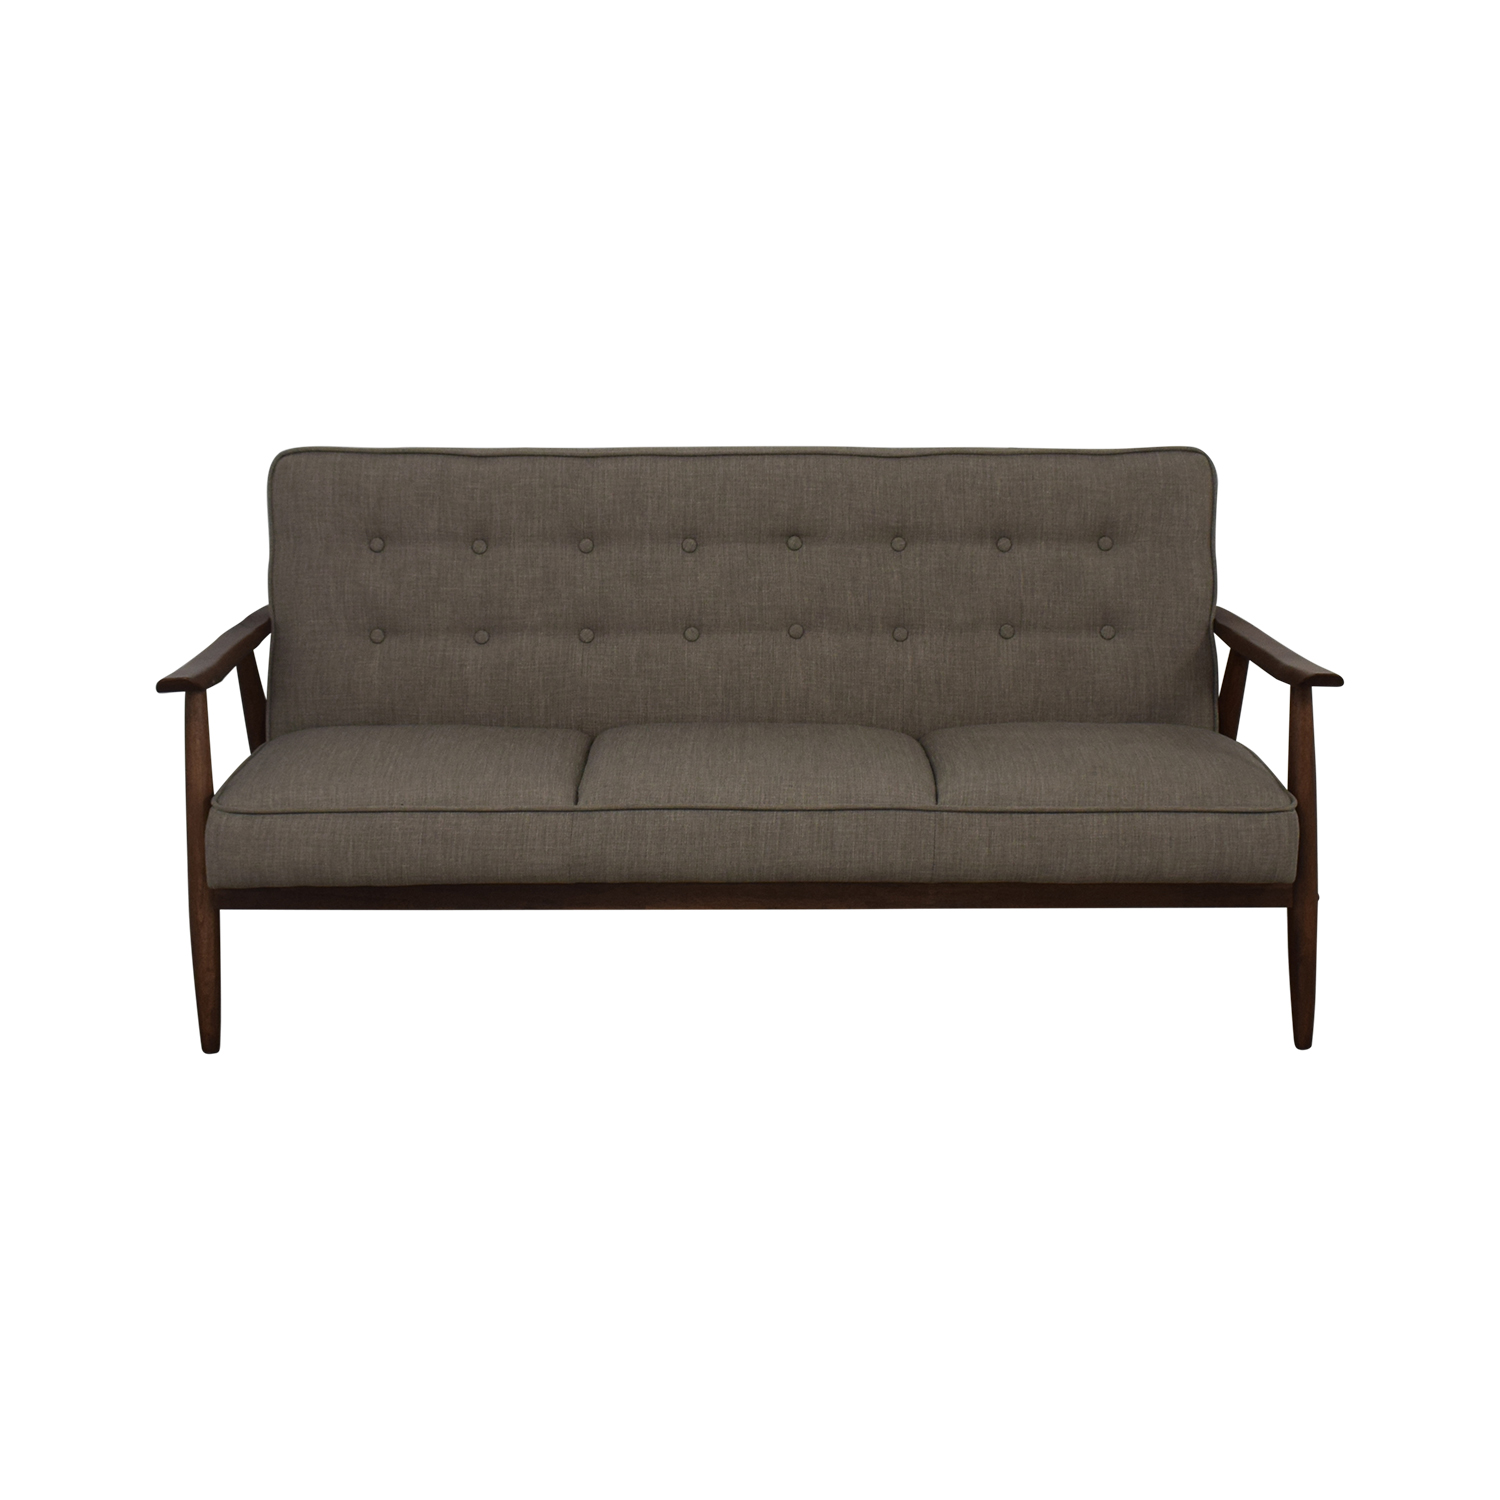 Urban Outfitters Urban Outfitters Grey Wyatt Sofa for sale